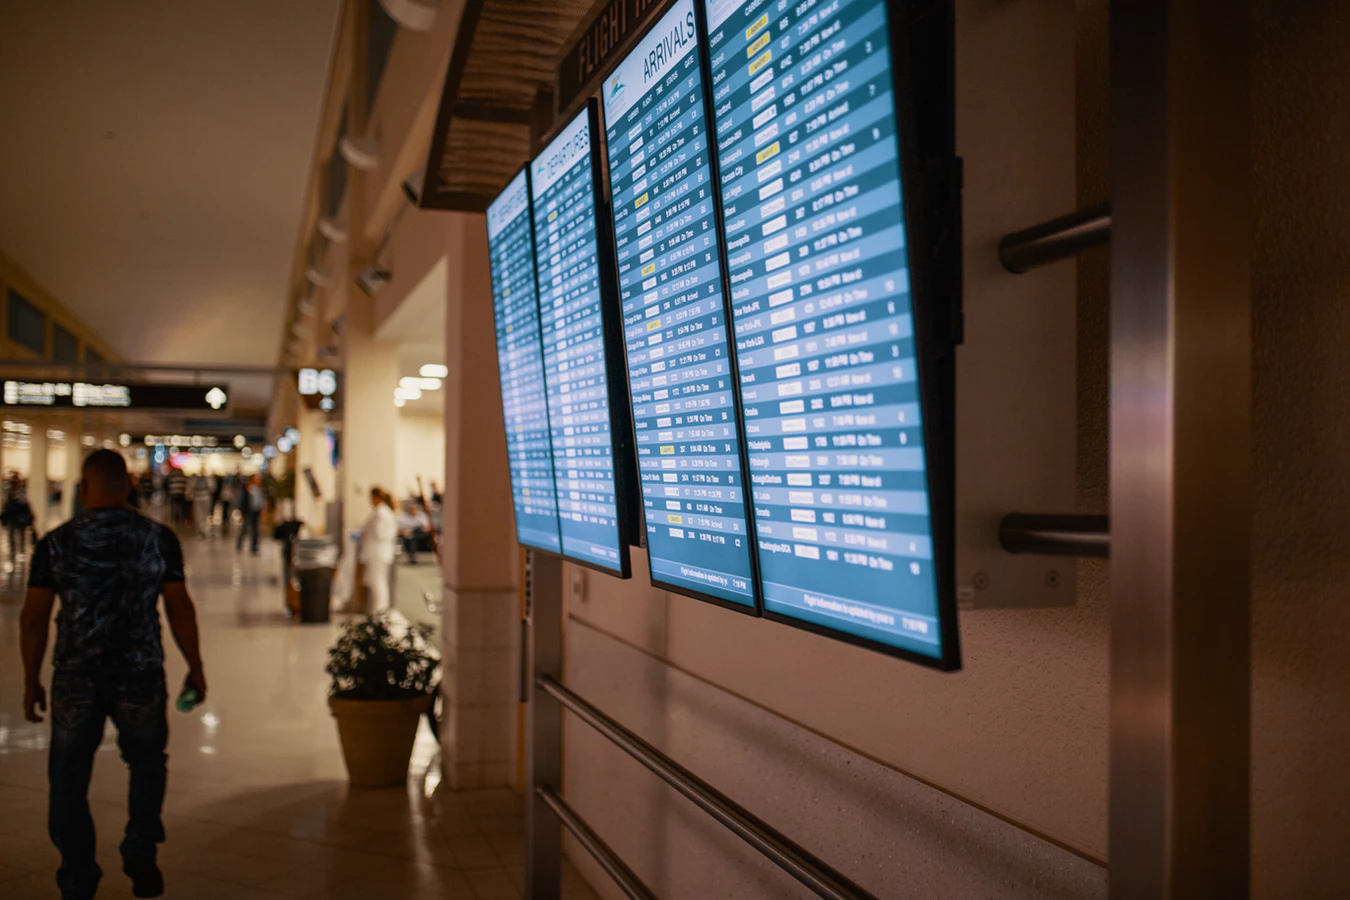 Use Screenly to launch and manage an airport digital signage deployment.